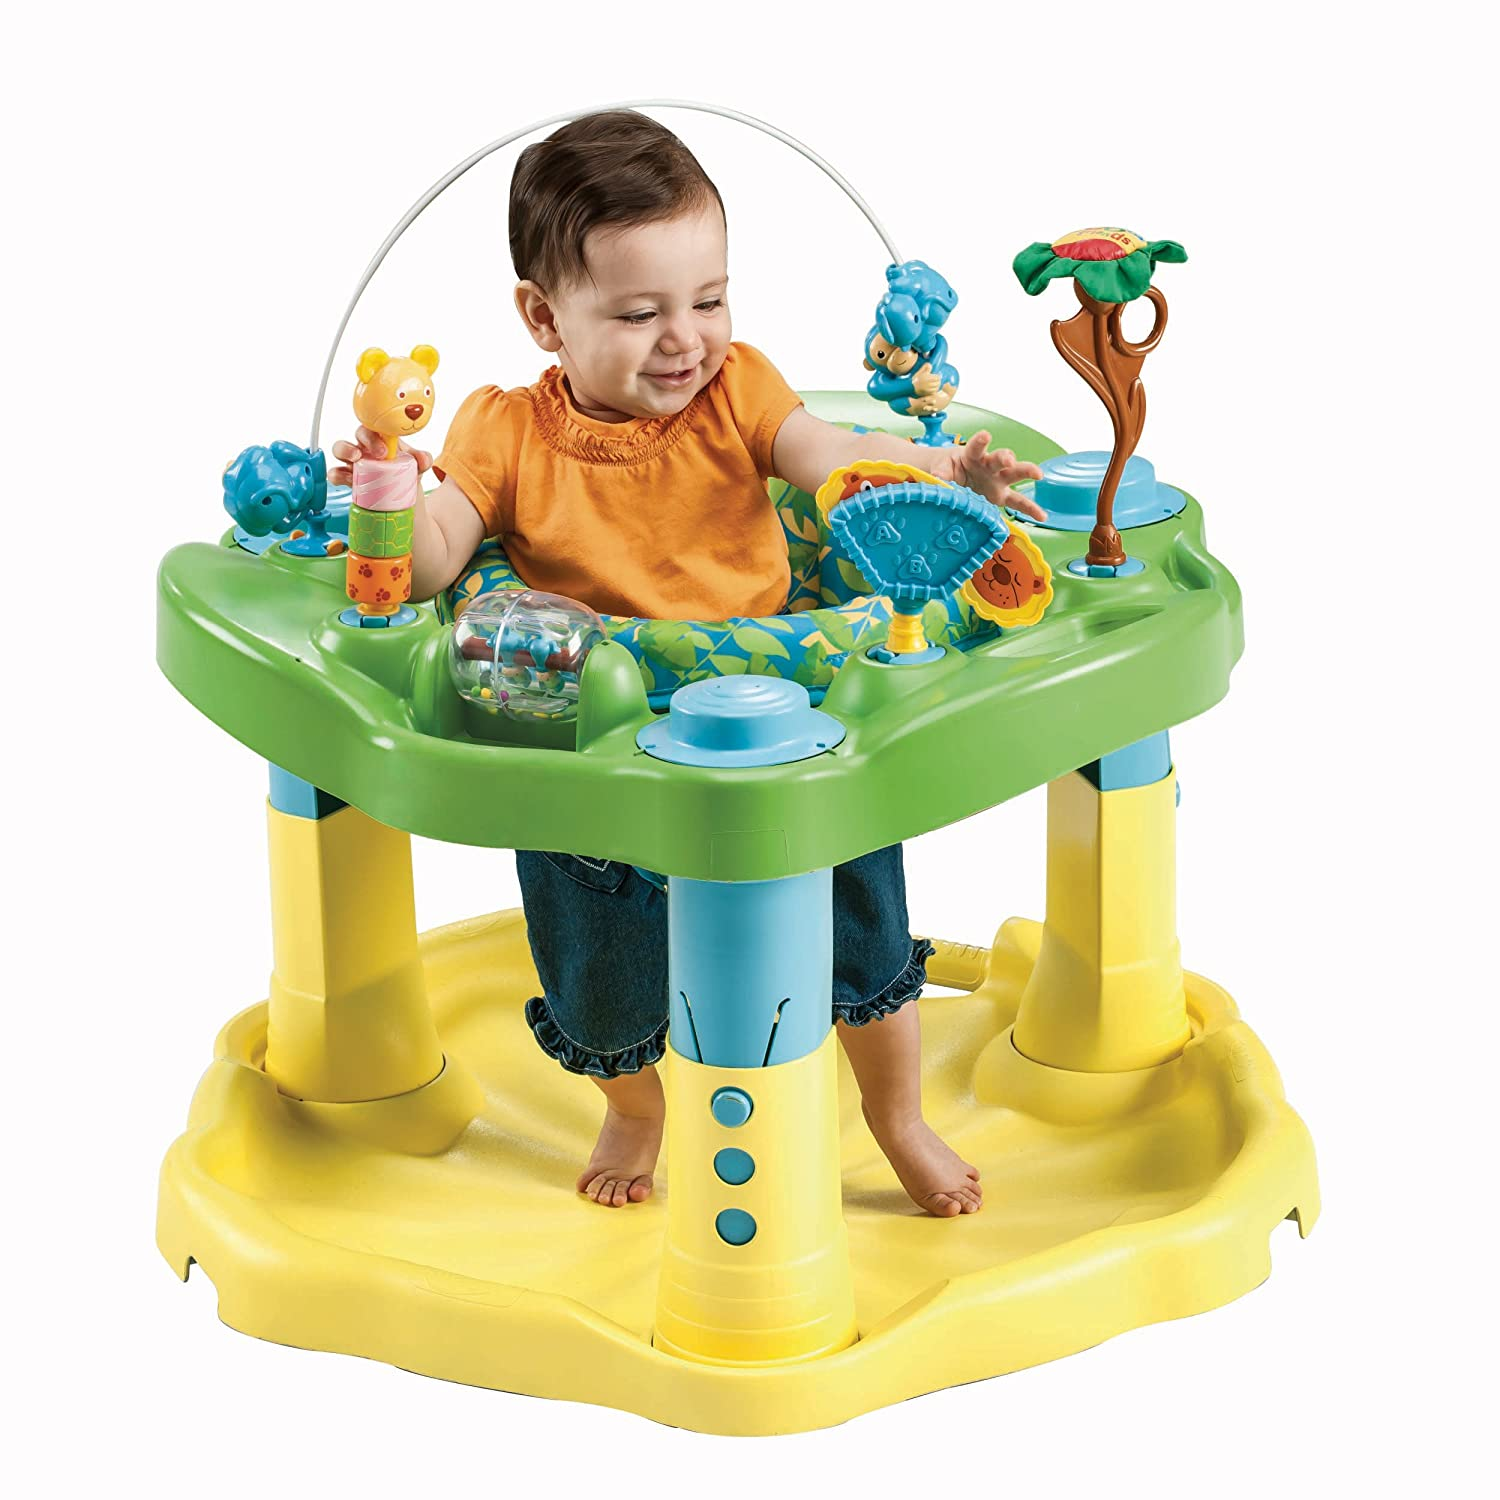 evenflo exersaucer bounce and learn activity centre zoo friends  - evenflo exersaucer bounce and learn activity centre zoo friendsamazoncouk baby